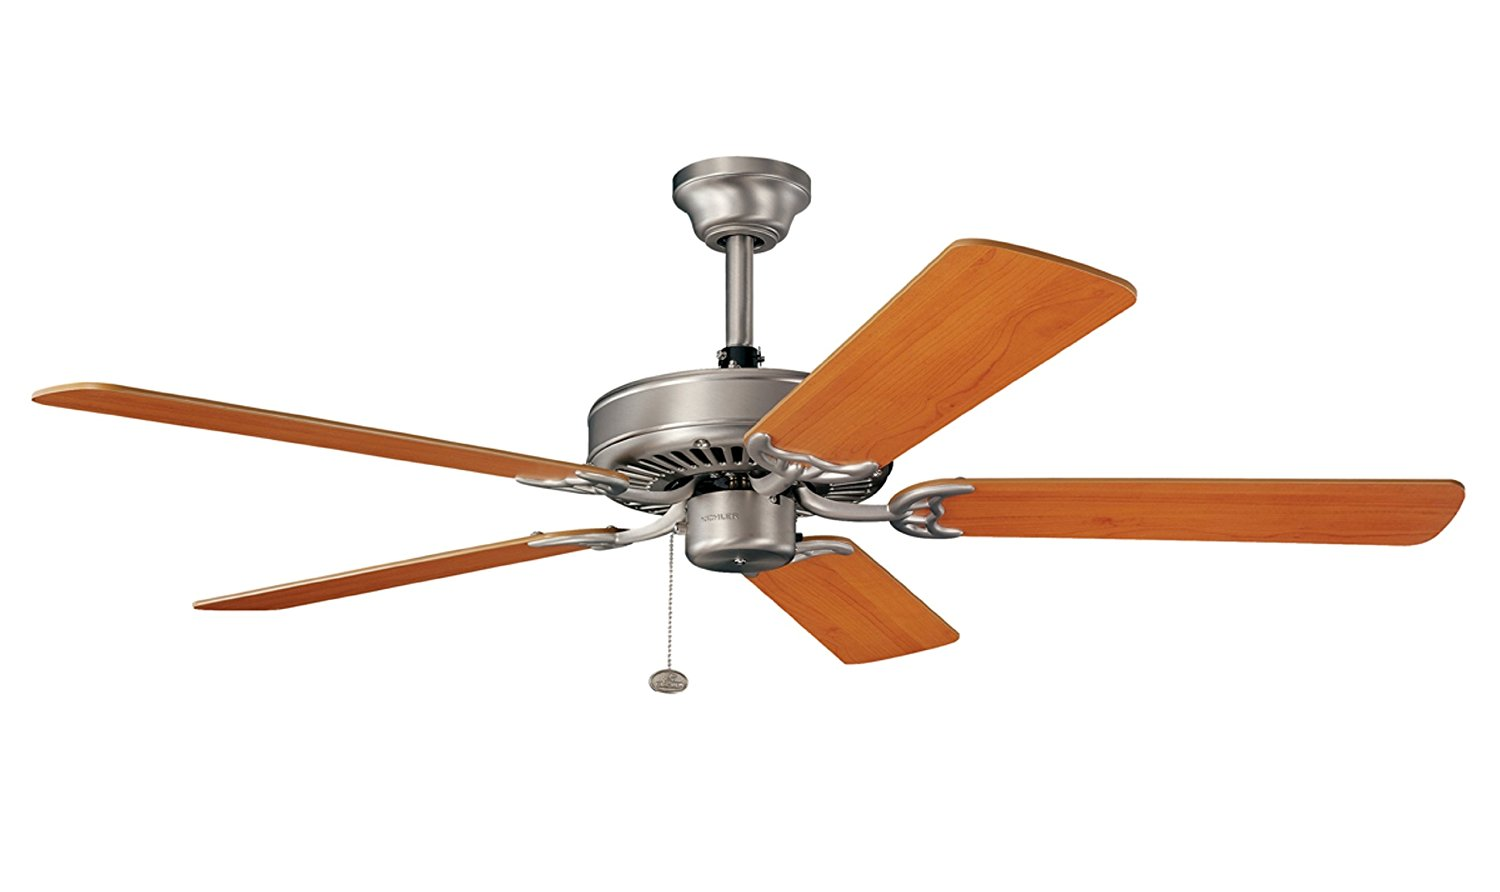 Kichler Lighting 339010ni Sterling Manor 52in Energy Star Ceiling Fan Brushed Nickel Finish With Reversible